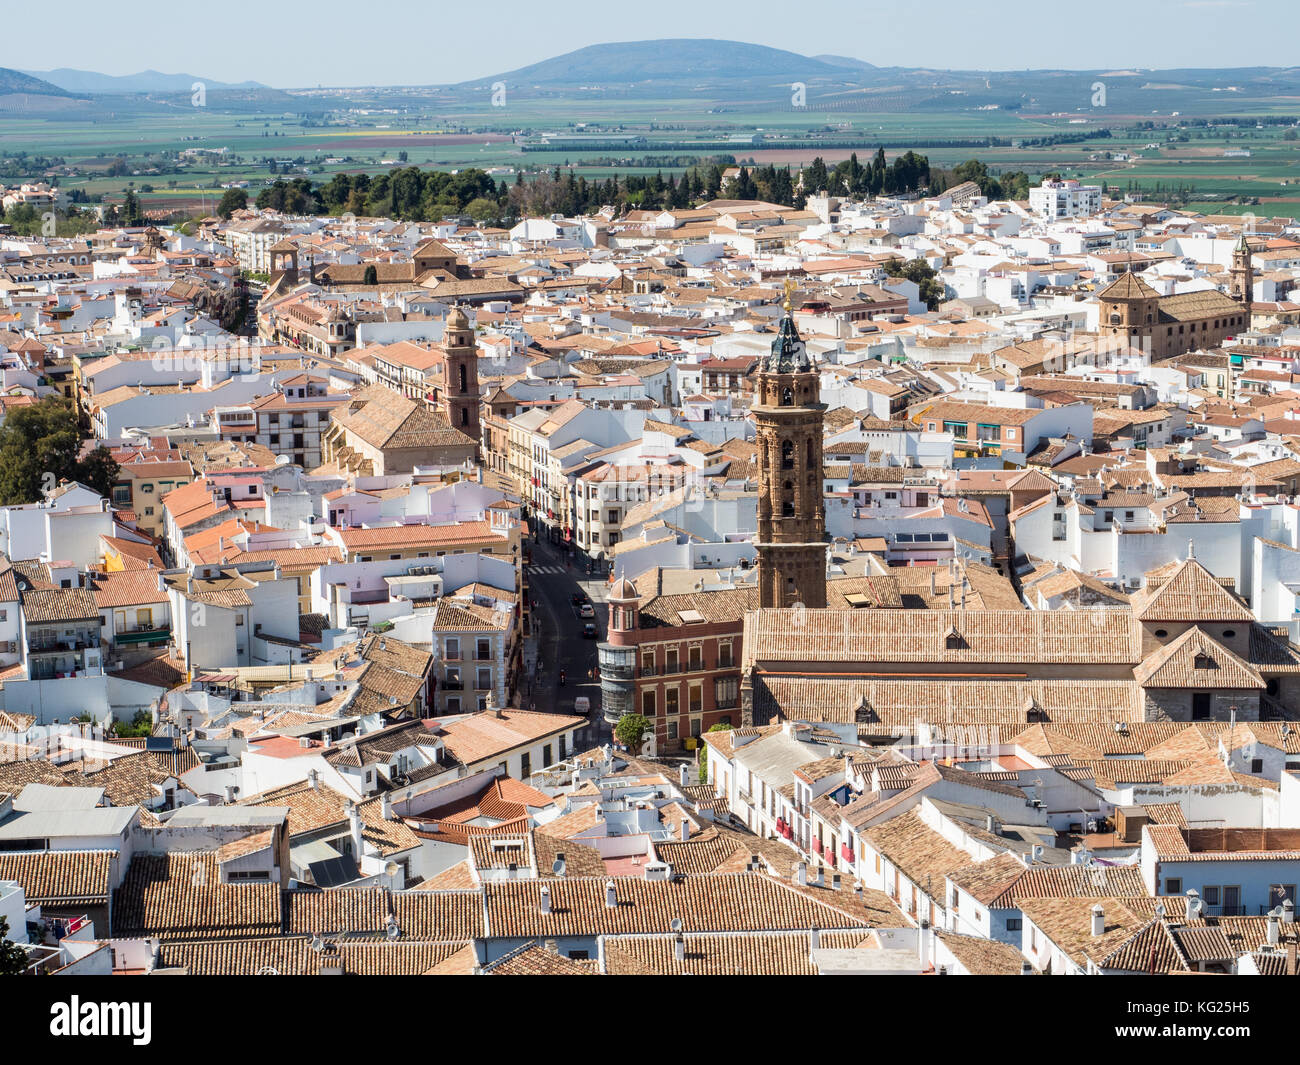 View from the hilltop fortress, Antequera, Andalucia, Spain, Europe - Stock Image